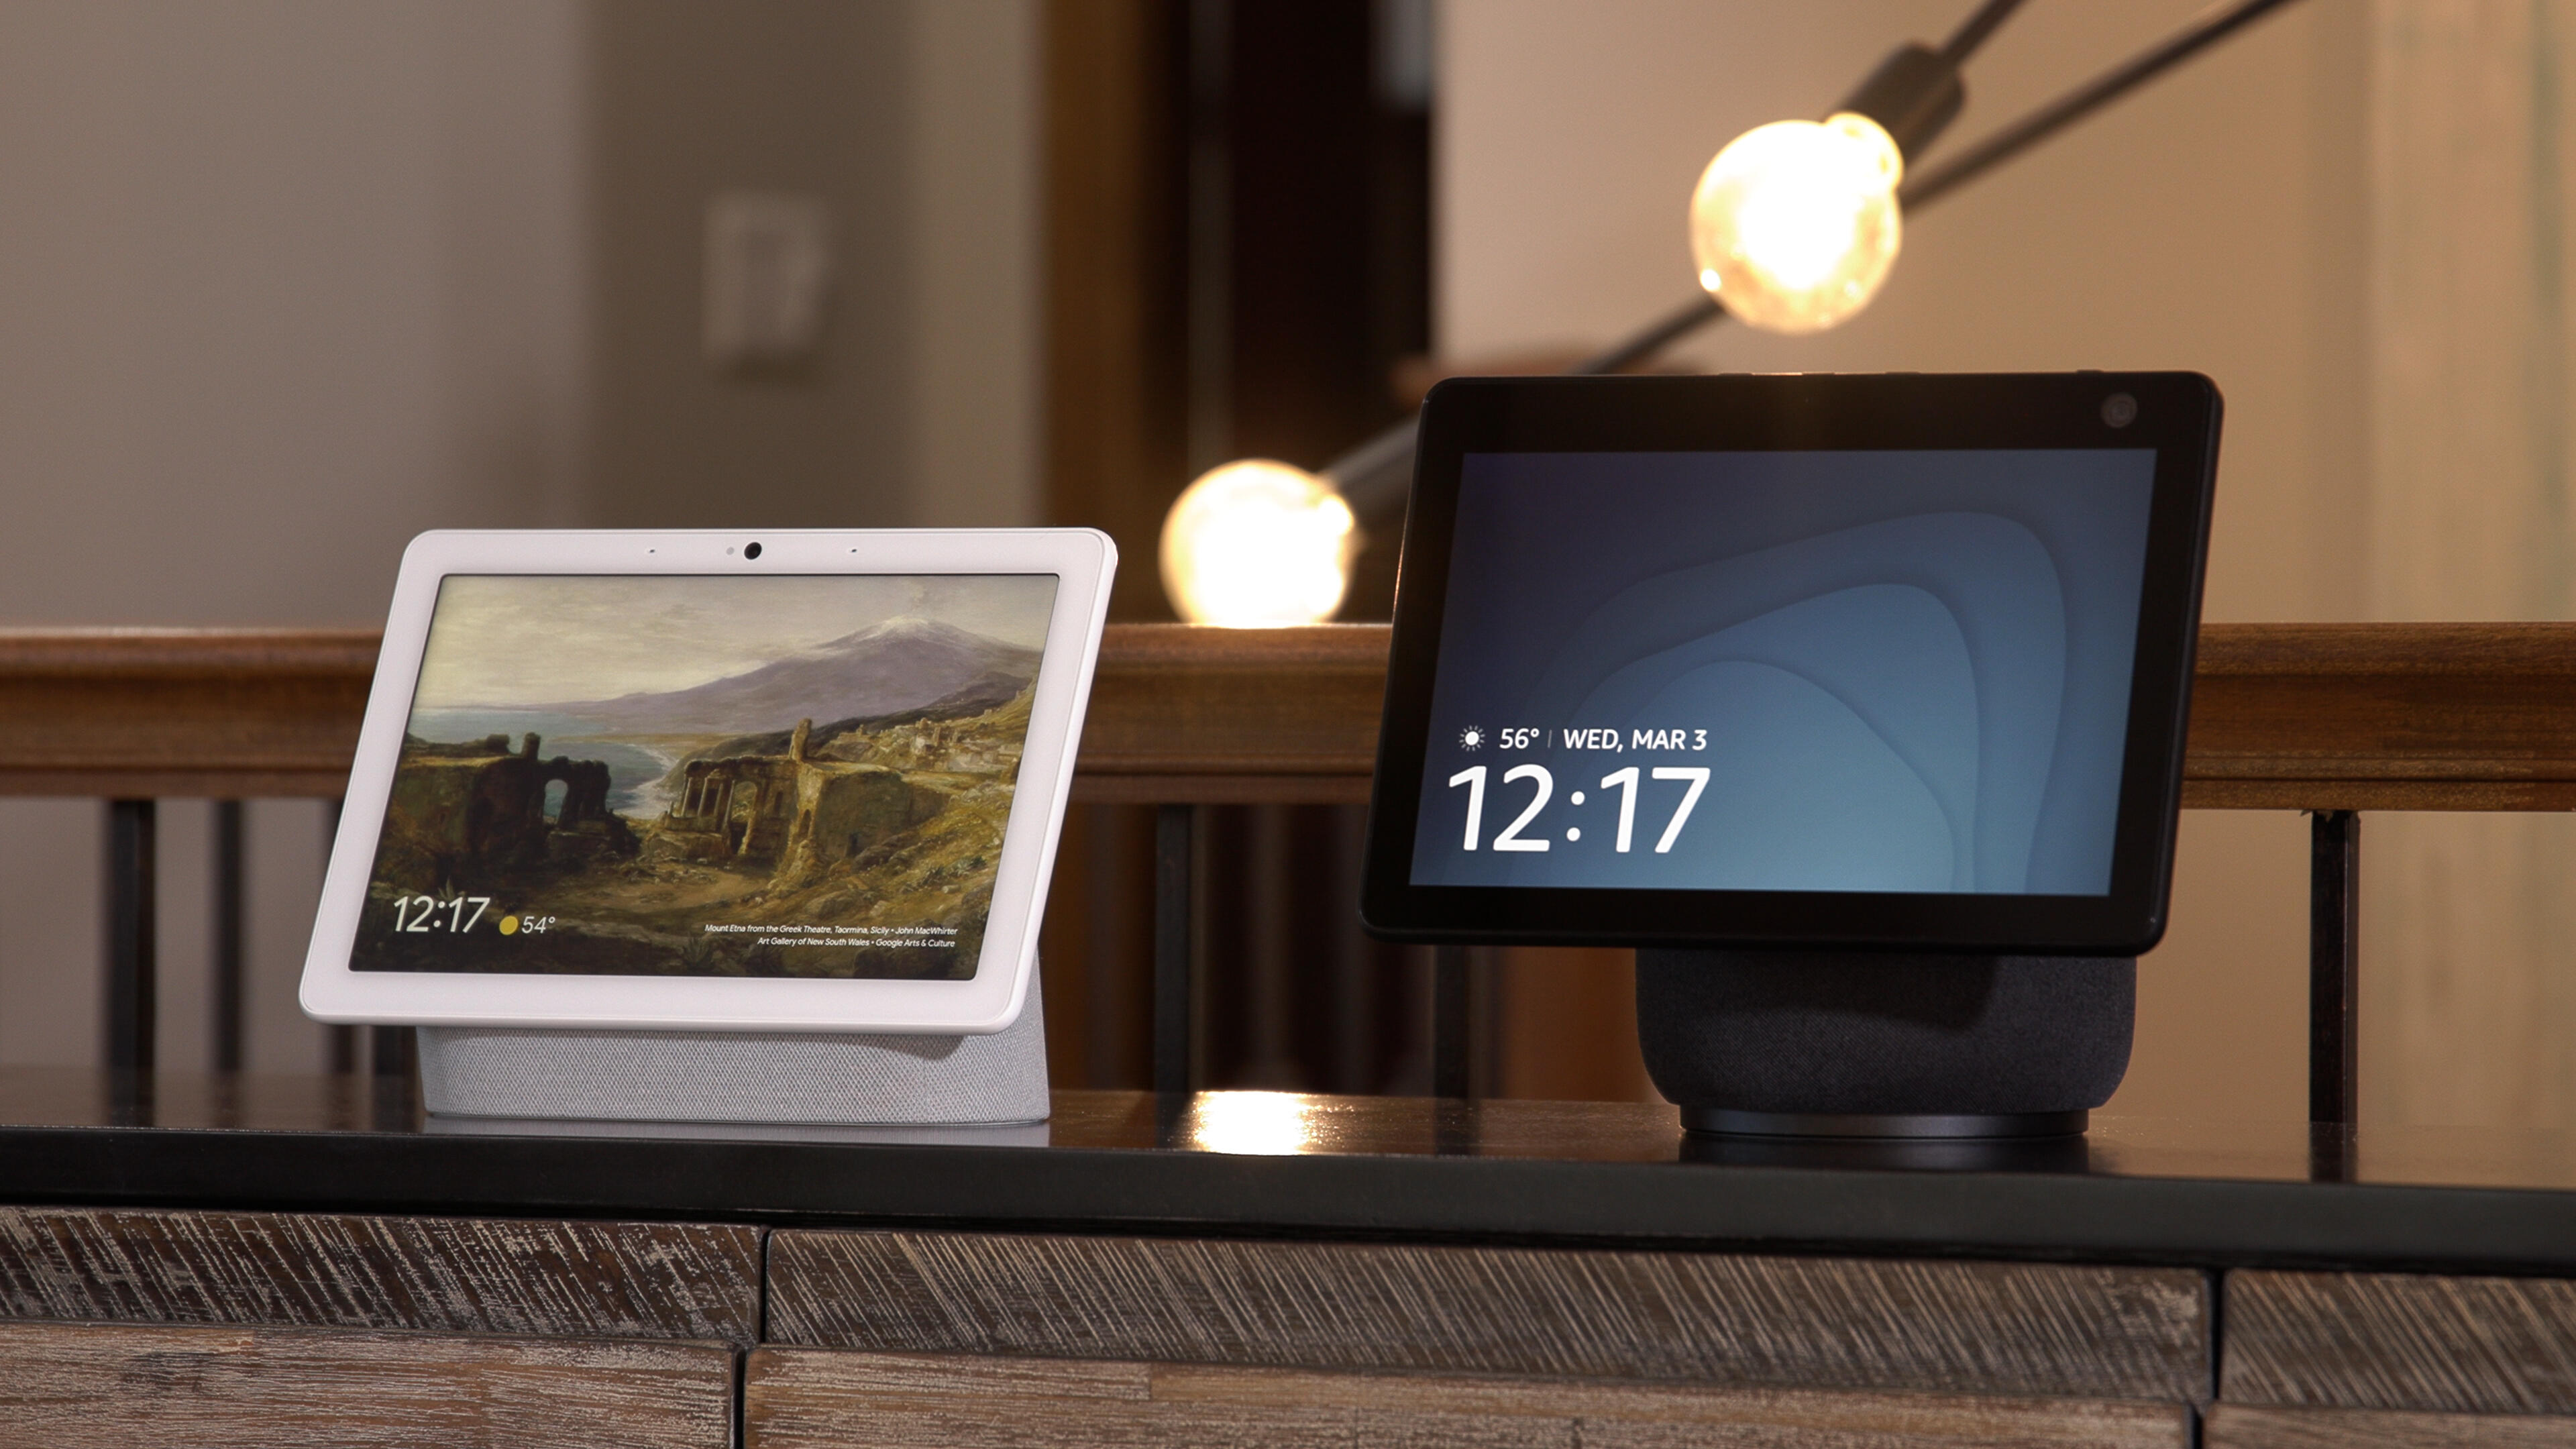 Video: The Echo Show 10 battles the Nest Hub Max for the smart display crown